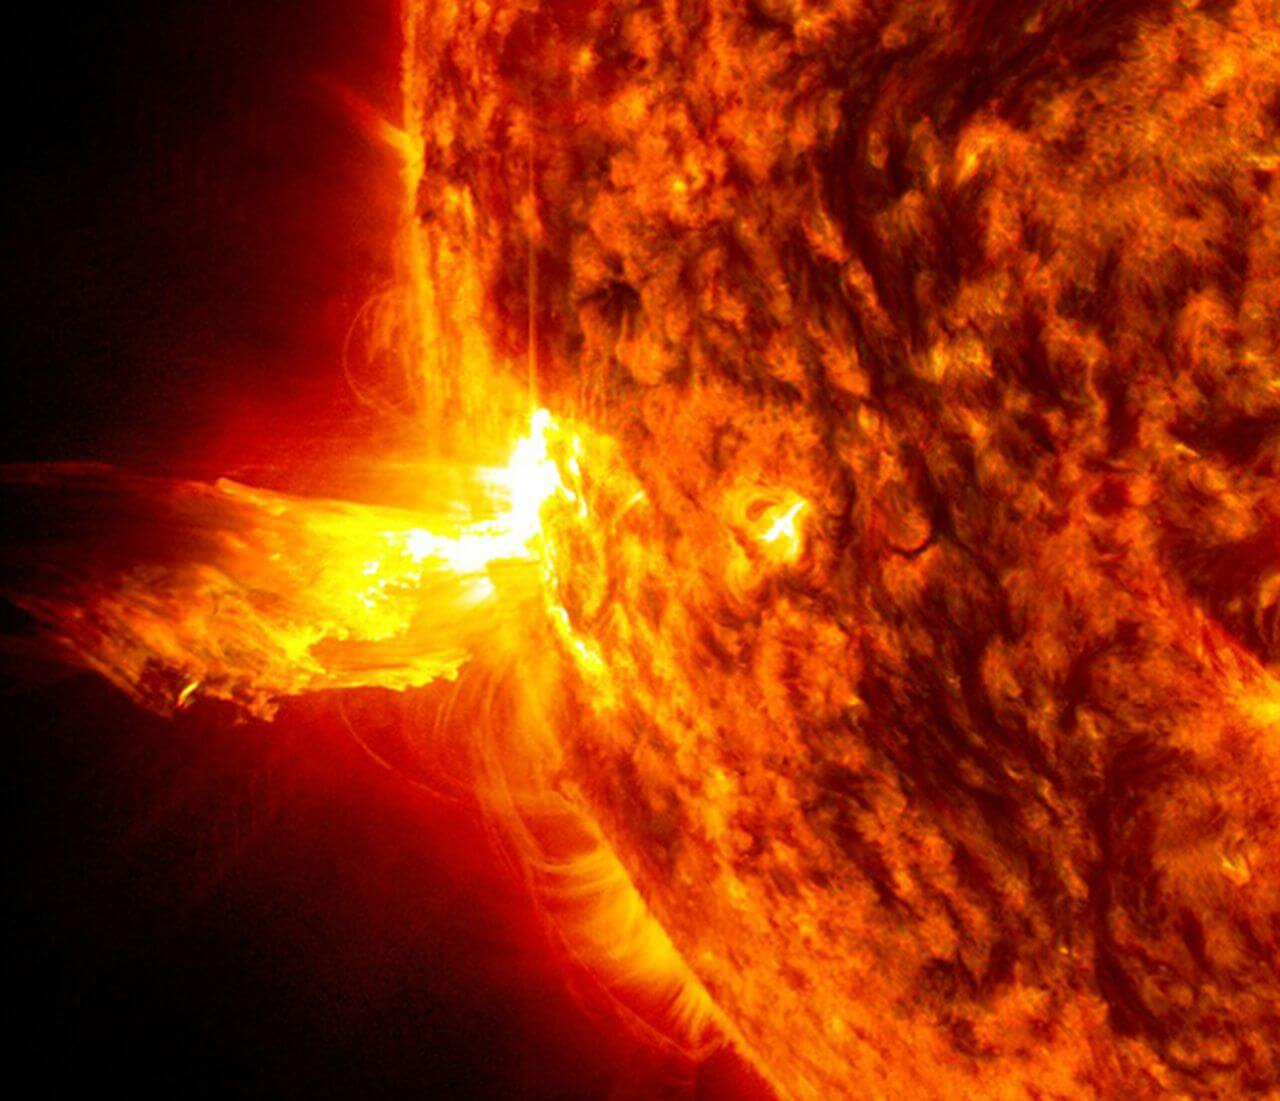 Solar storms are back threatening life on planet Earth